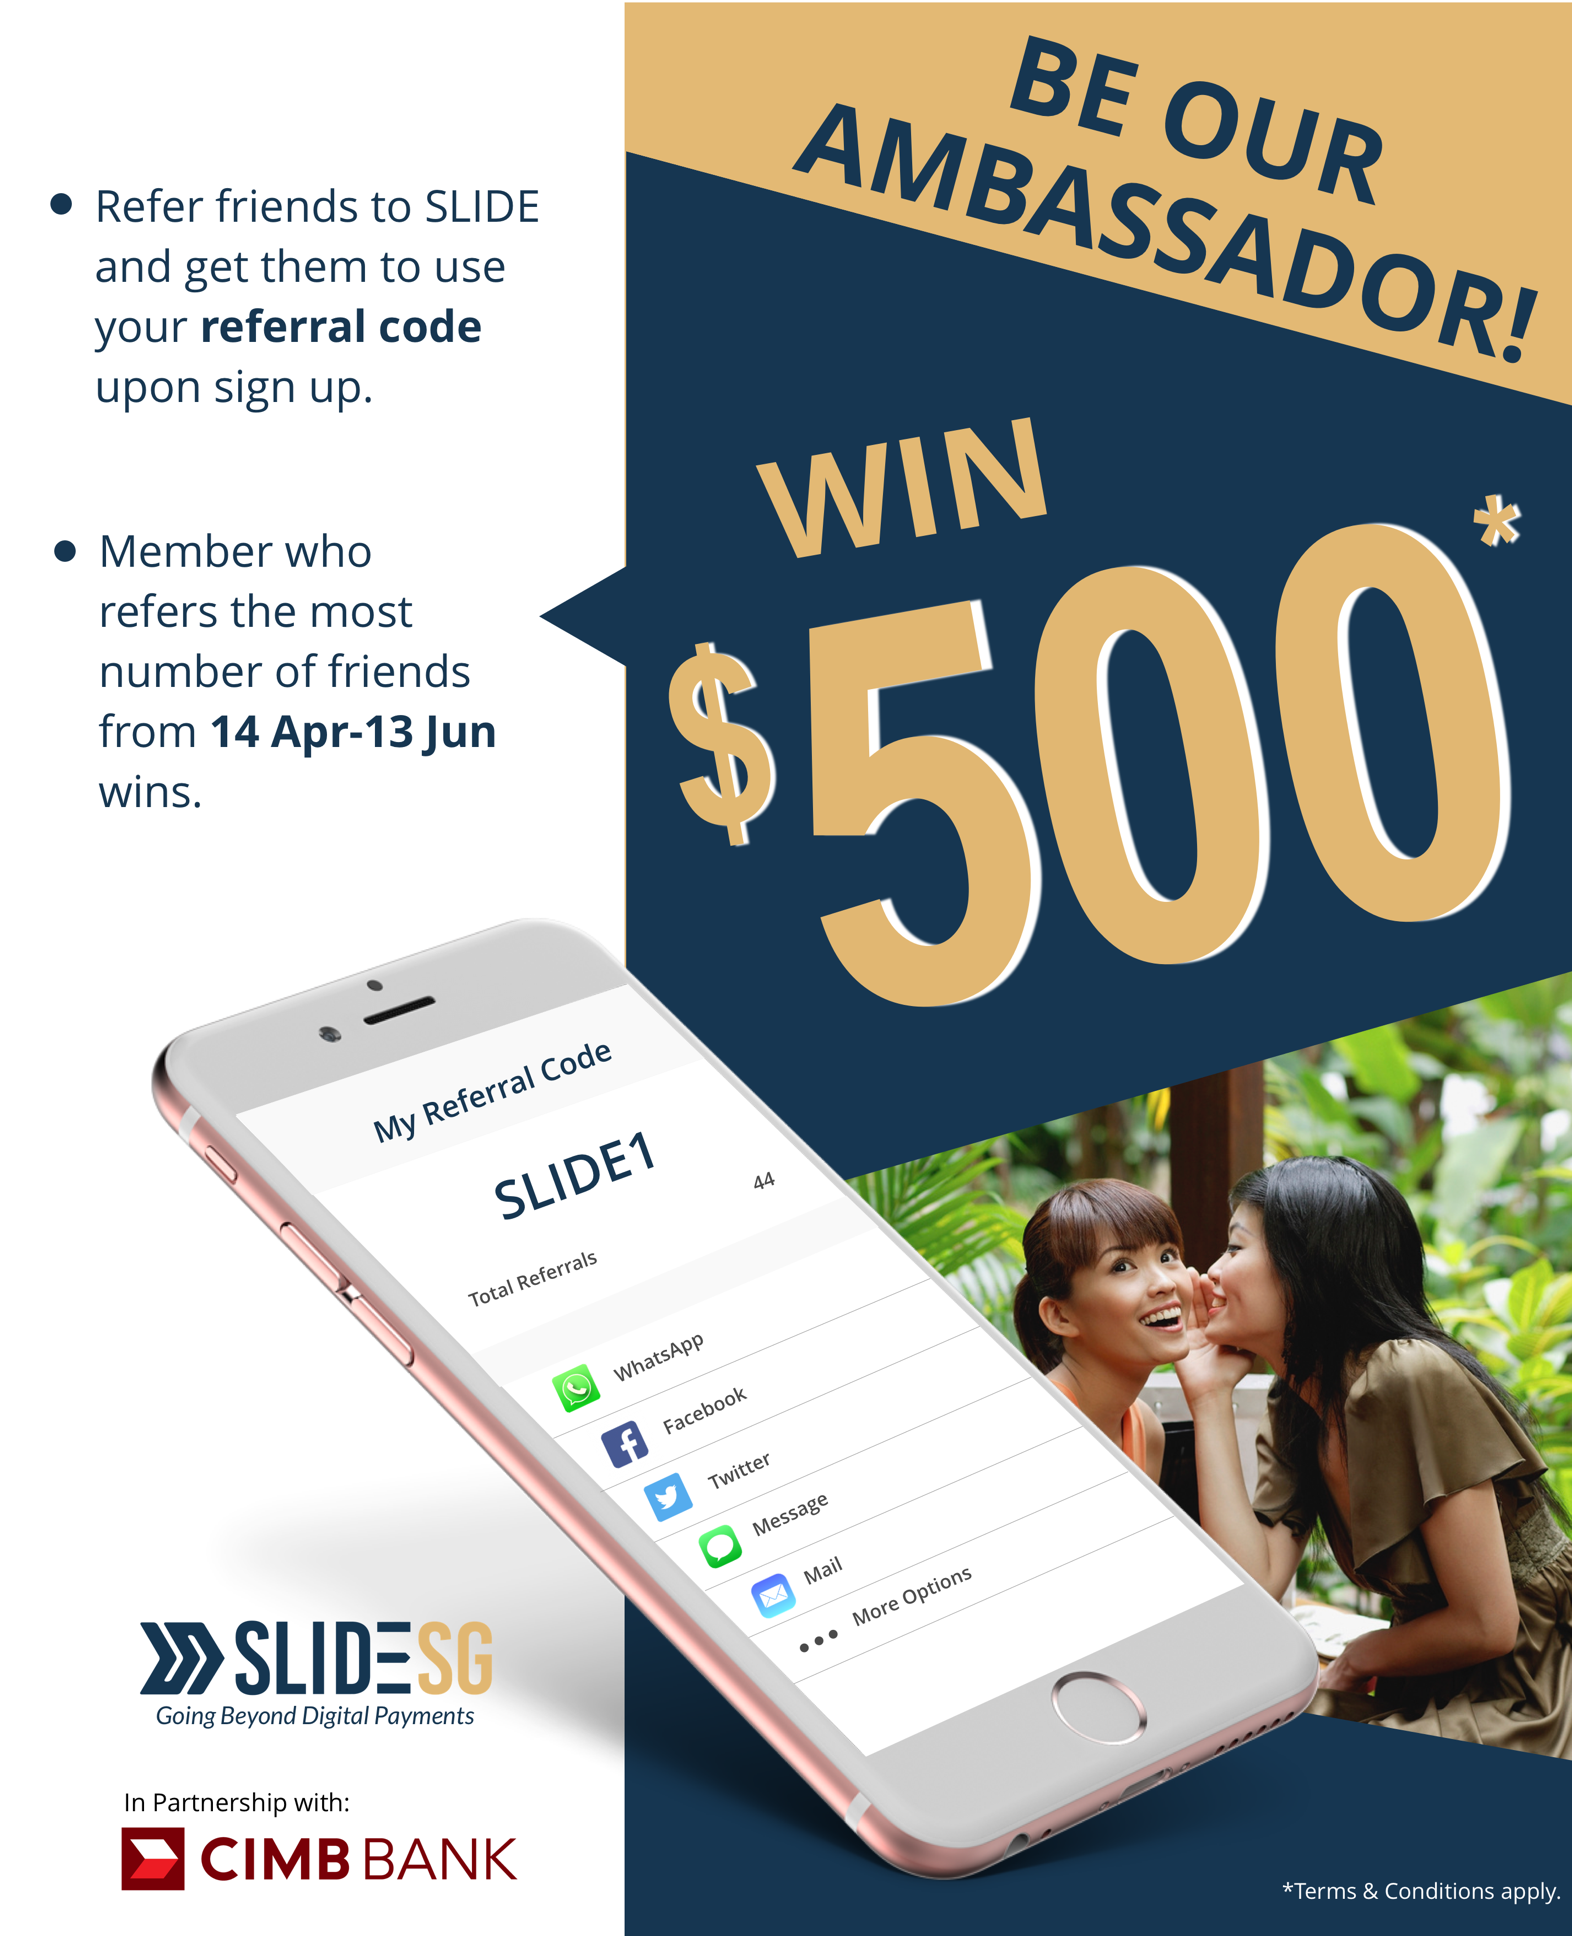 design poster for SLIDE Top Ambassador Promo in partnership with CIMB bank